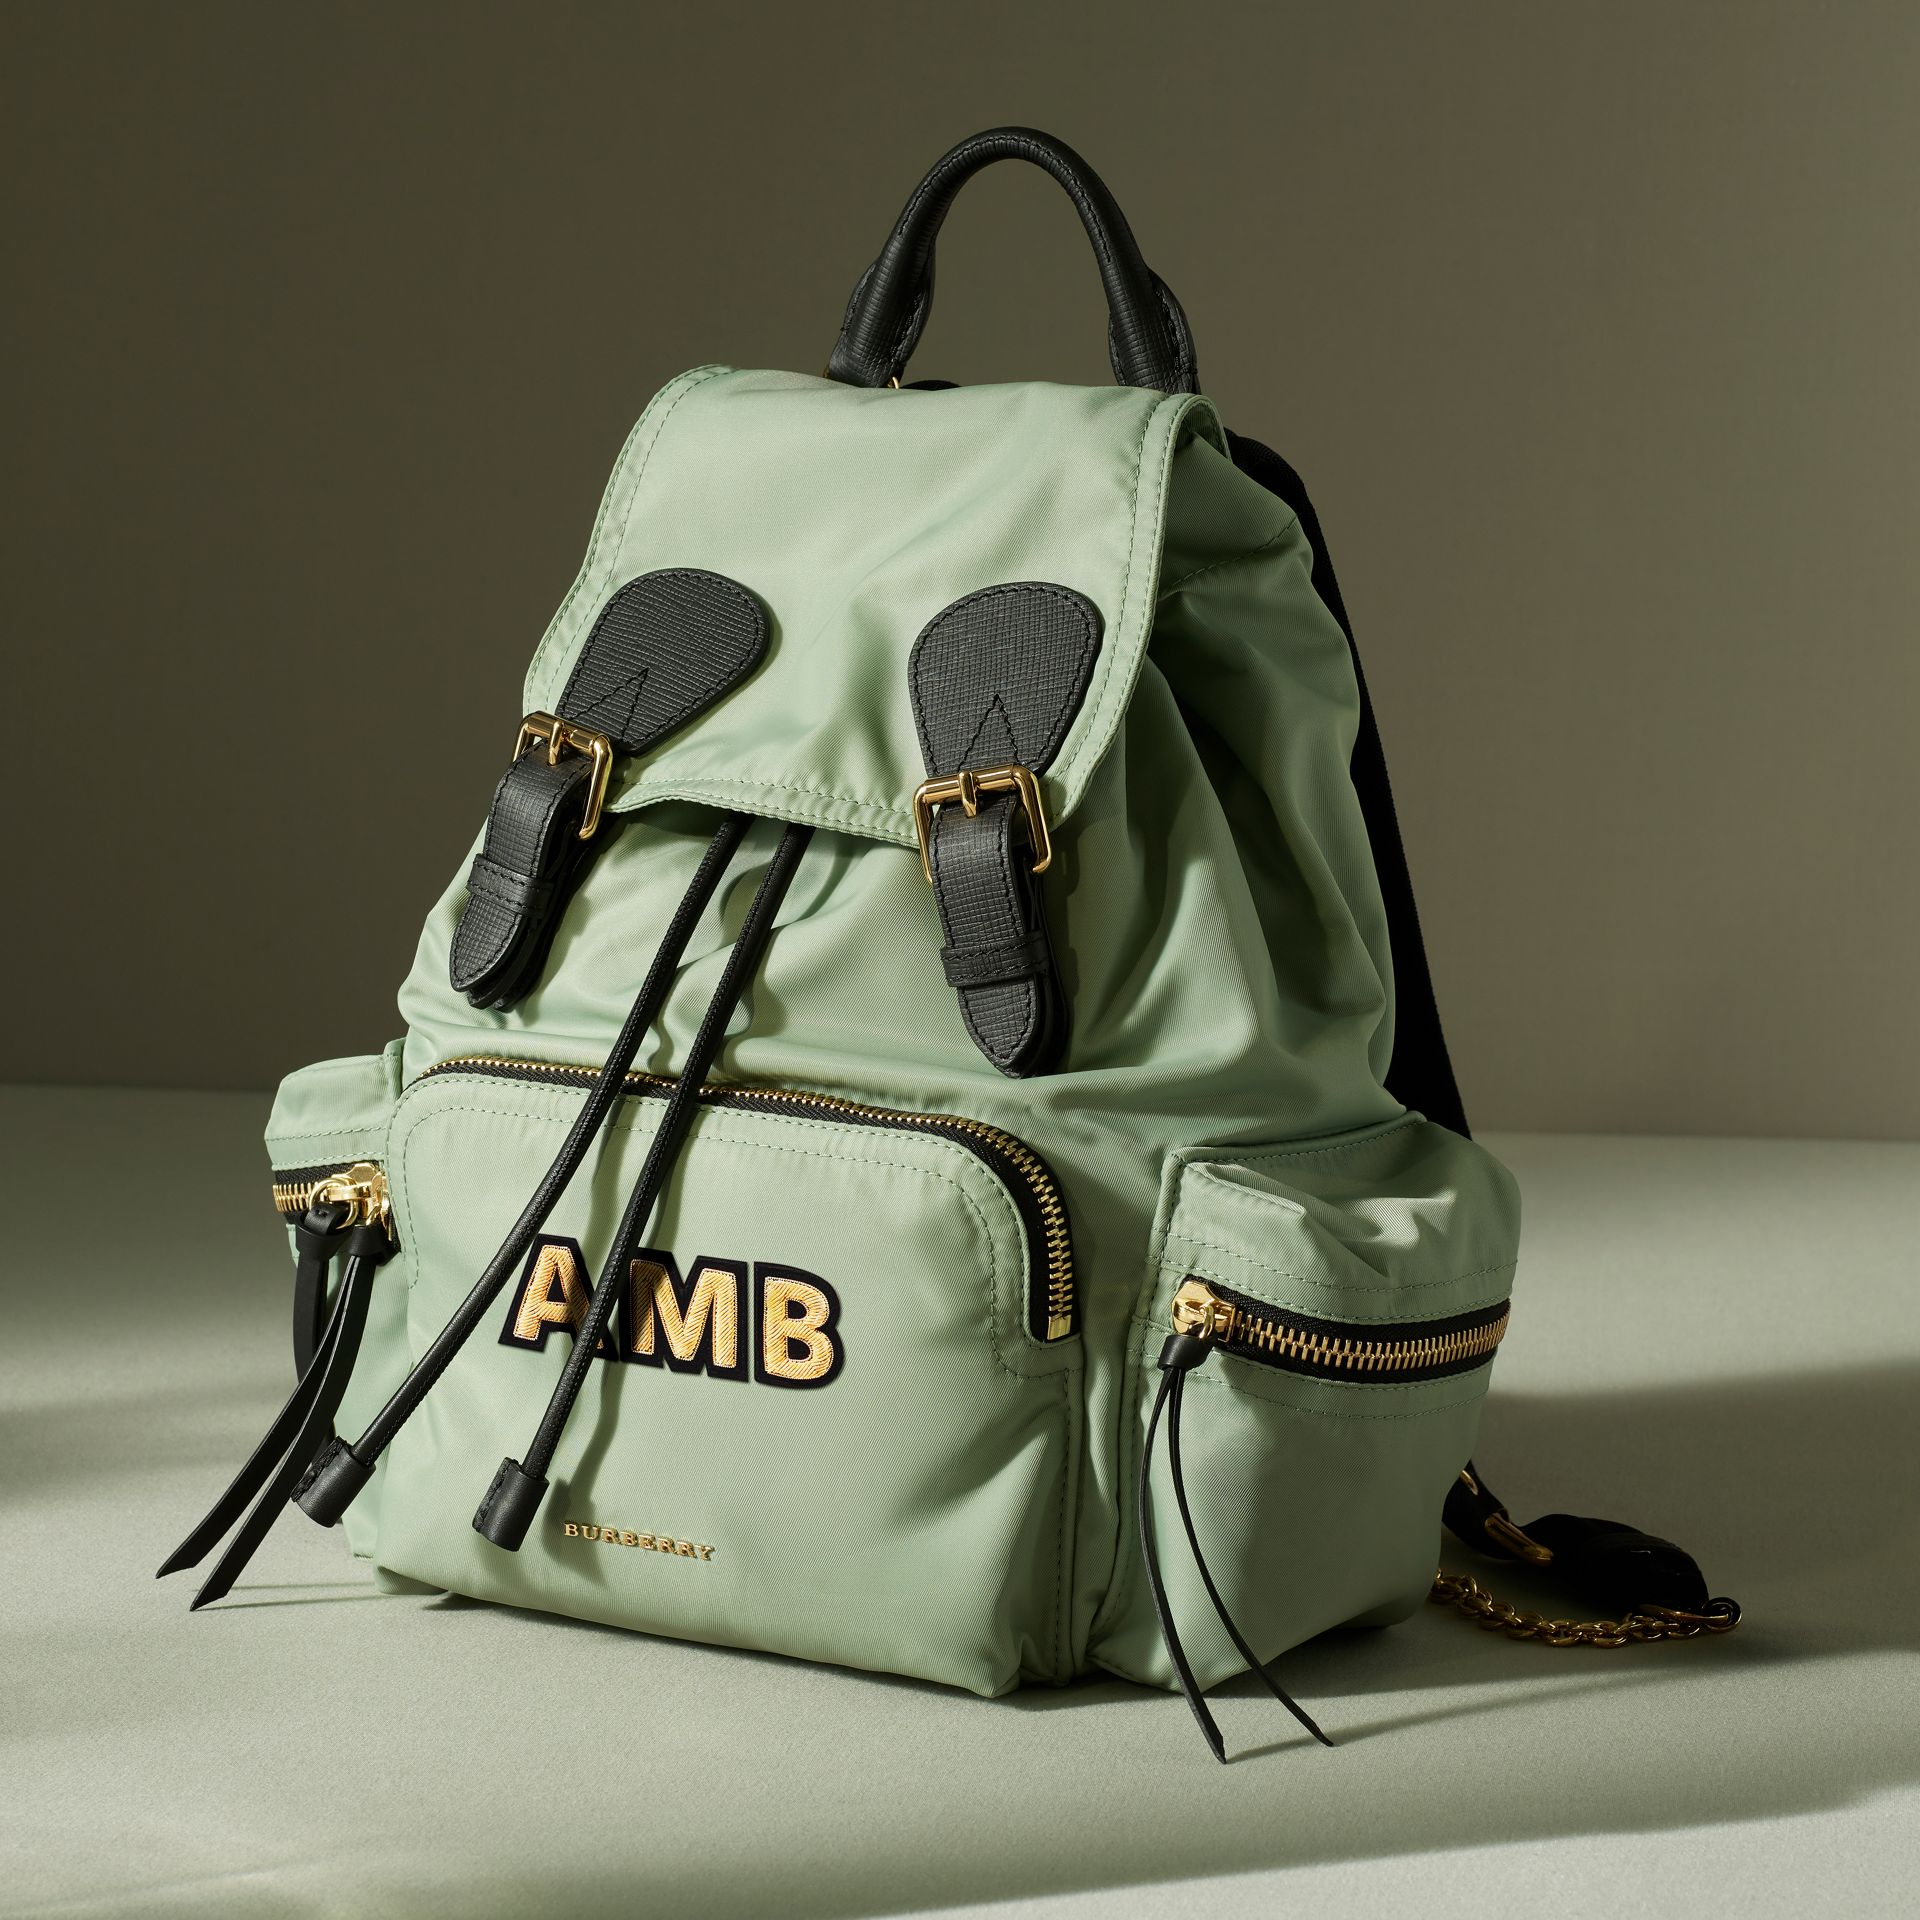 Zaino The Rucksack medio in nylon tecnico e pelle (Verde Mela) - Donna | Burberry - immagine della galleria 7